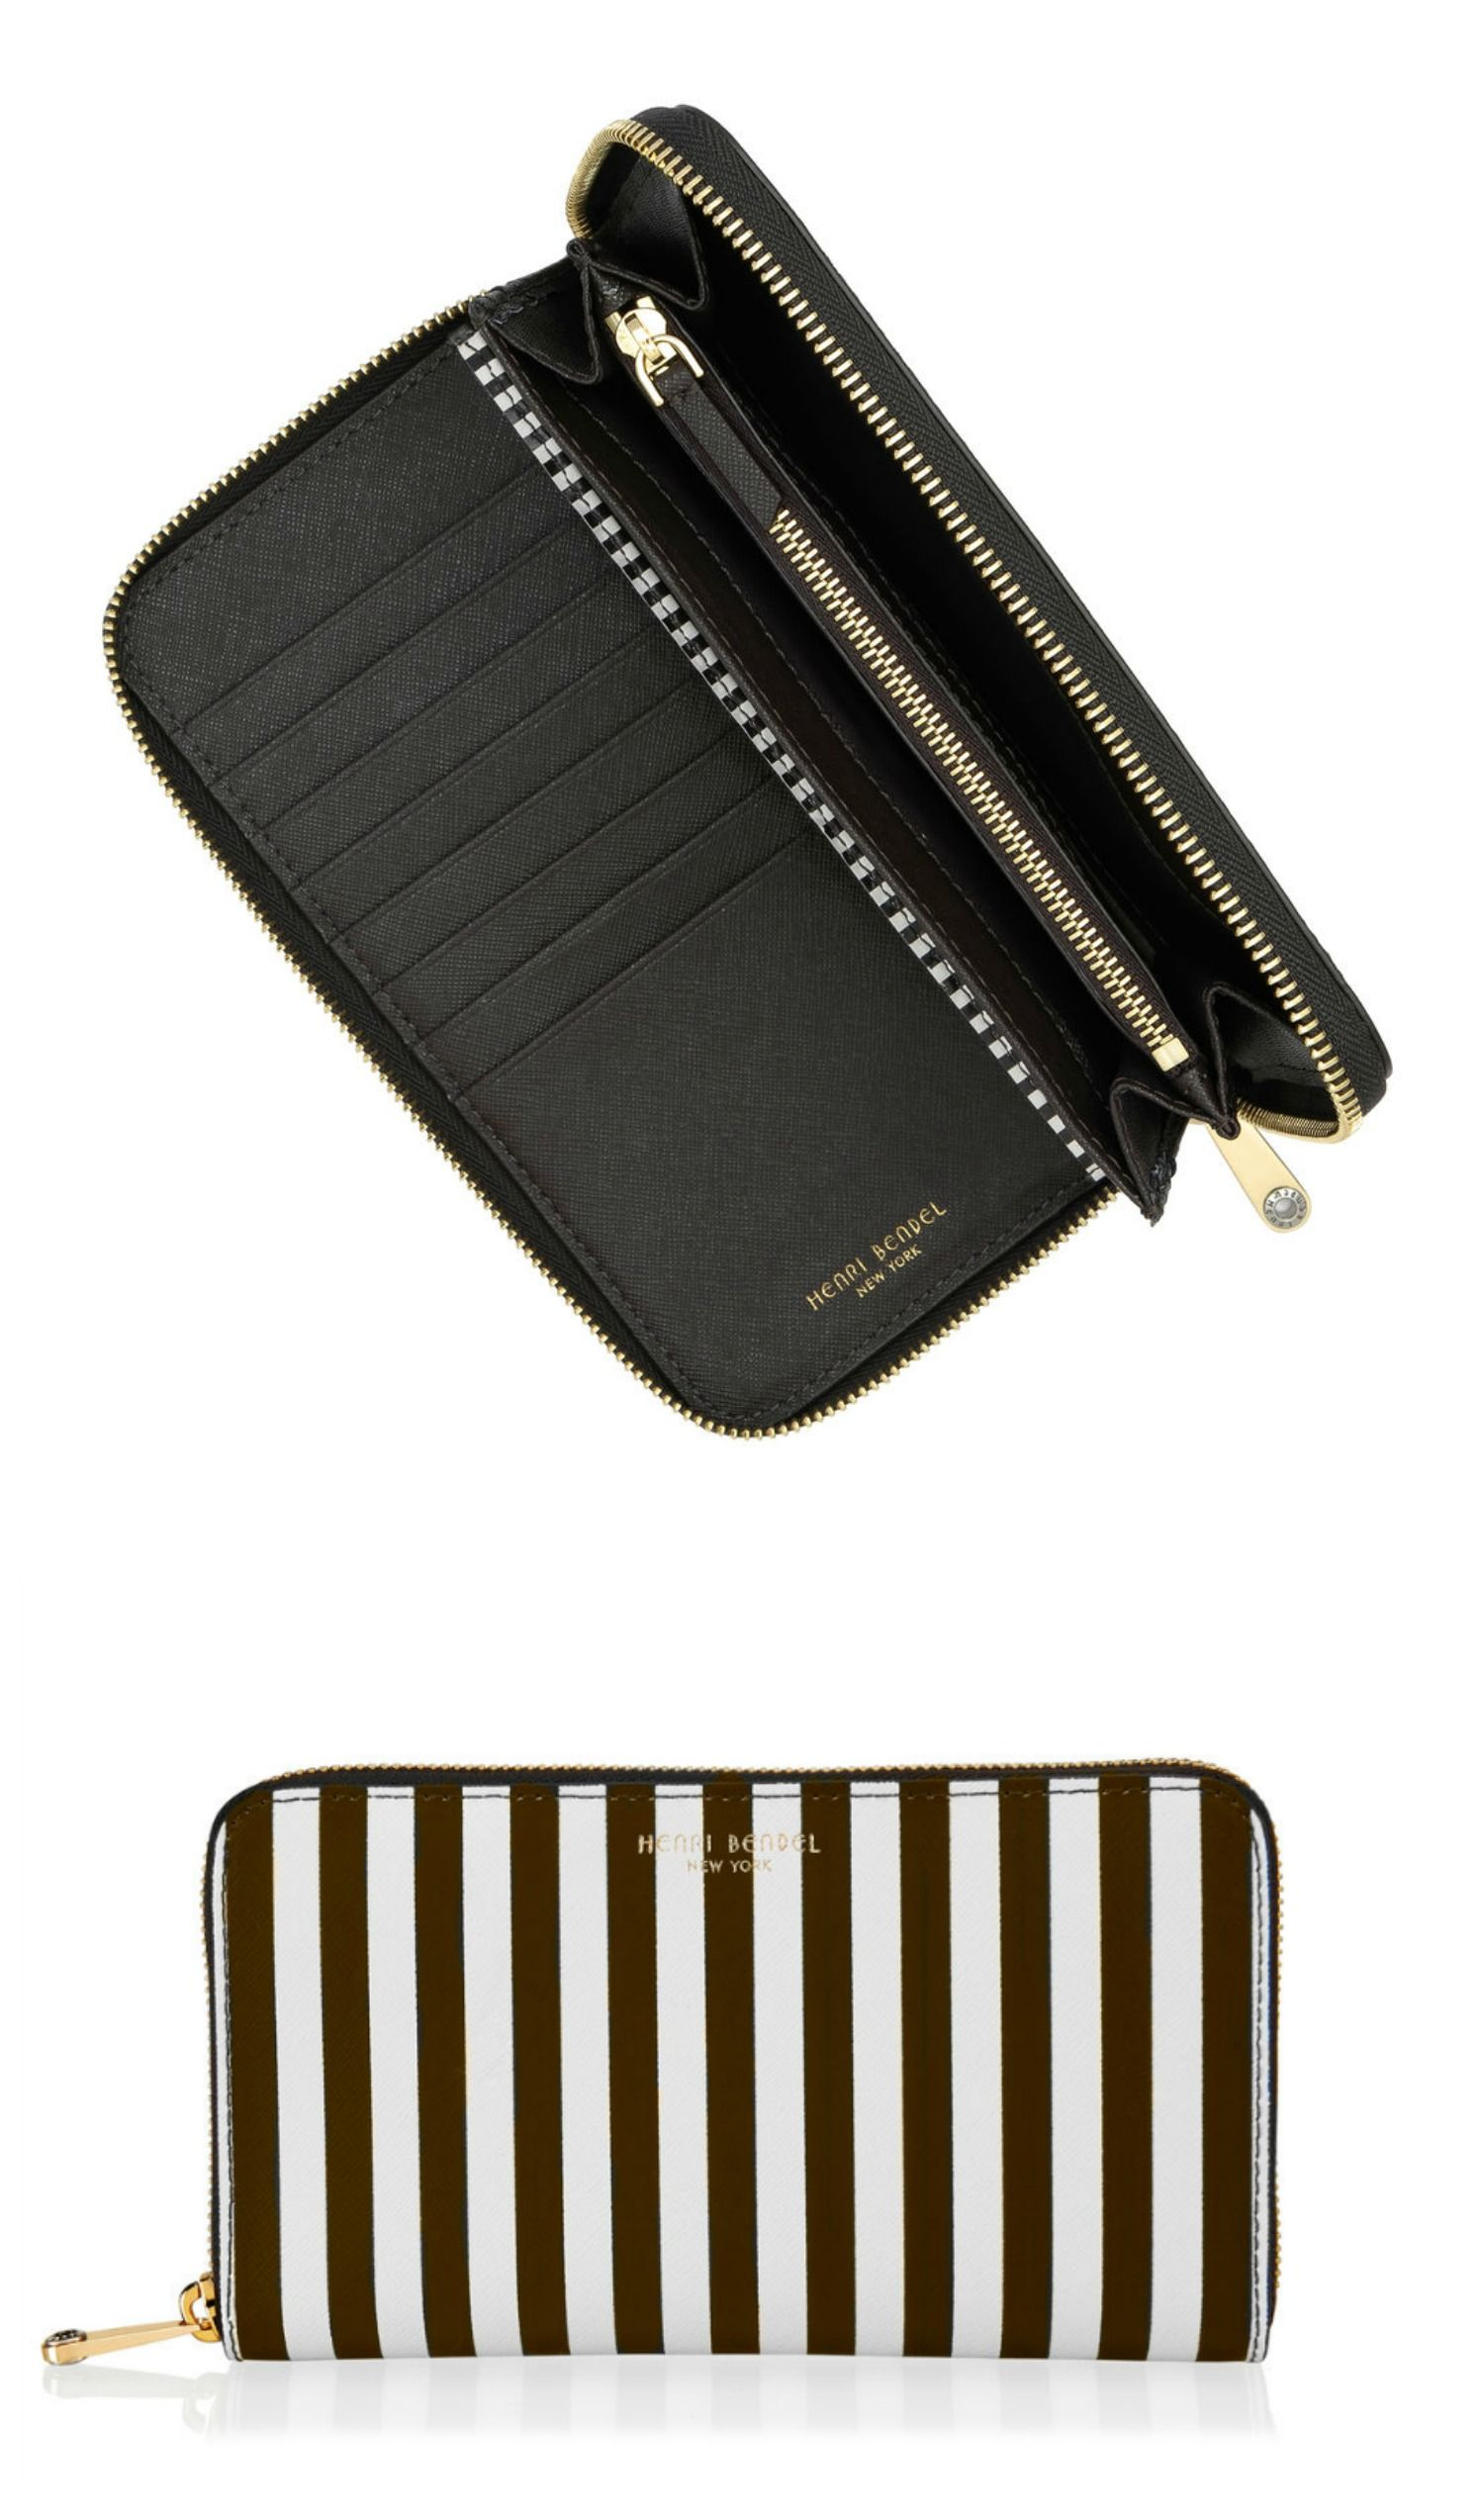 The Centennial Stripe Zip Around Continental Wallet belongs in every Bendel Girl's designer handbag: crafted with chic Saffiano leather and accented with our signature brown and white stripes, this must-have luxury handbag accessory provides plenty of convenient storage and sophisticated style.